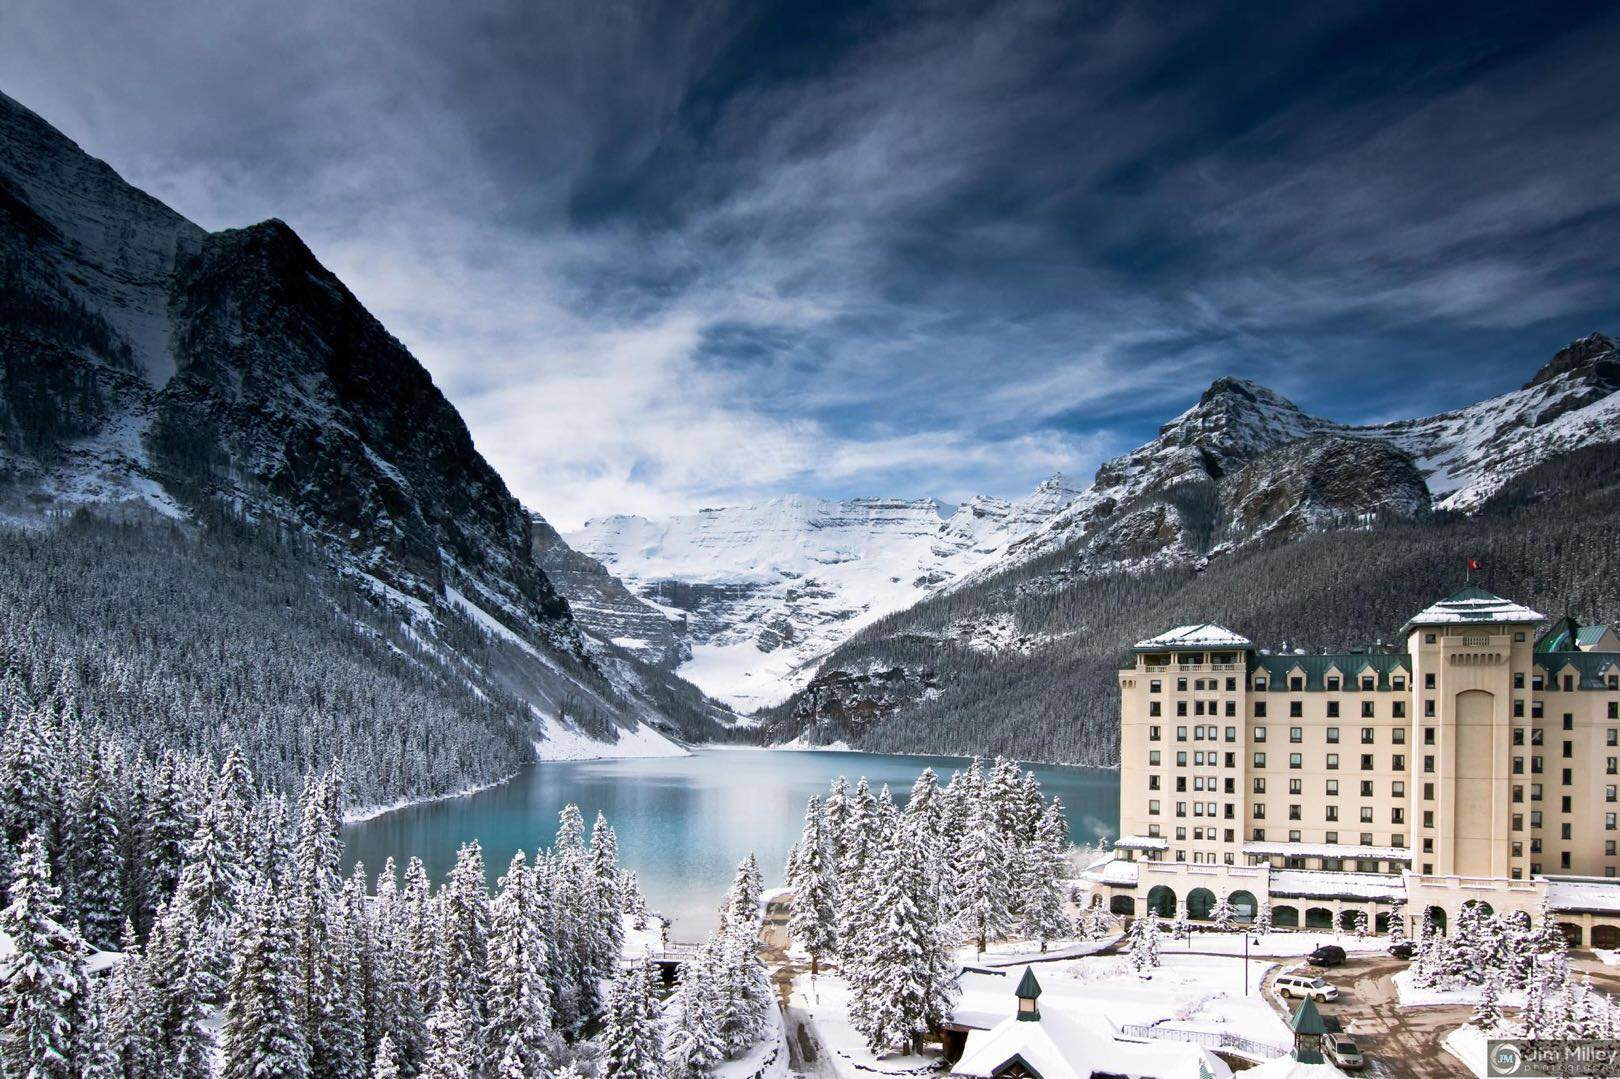 4-Day Rockies Winter from Calgary: Banff Hot Spring, Banff Gondola, Columbia Icefield, Johnston Canyon